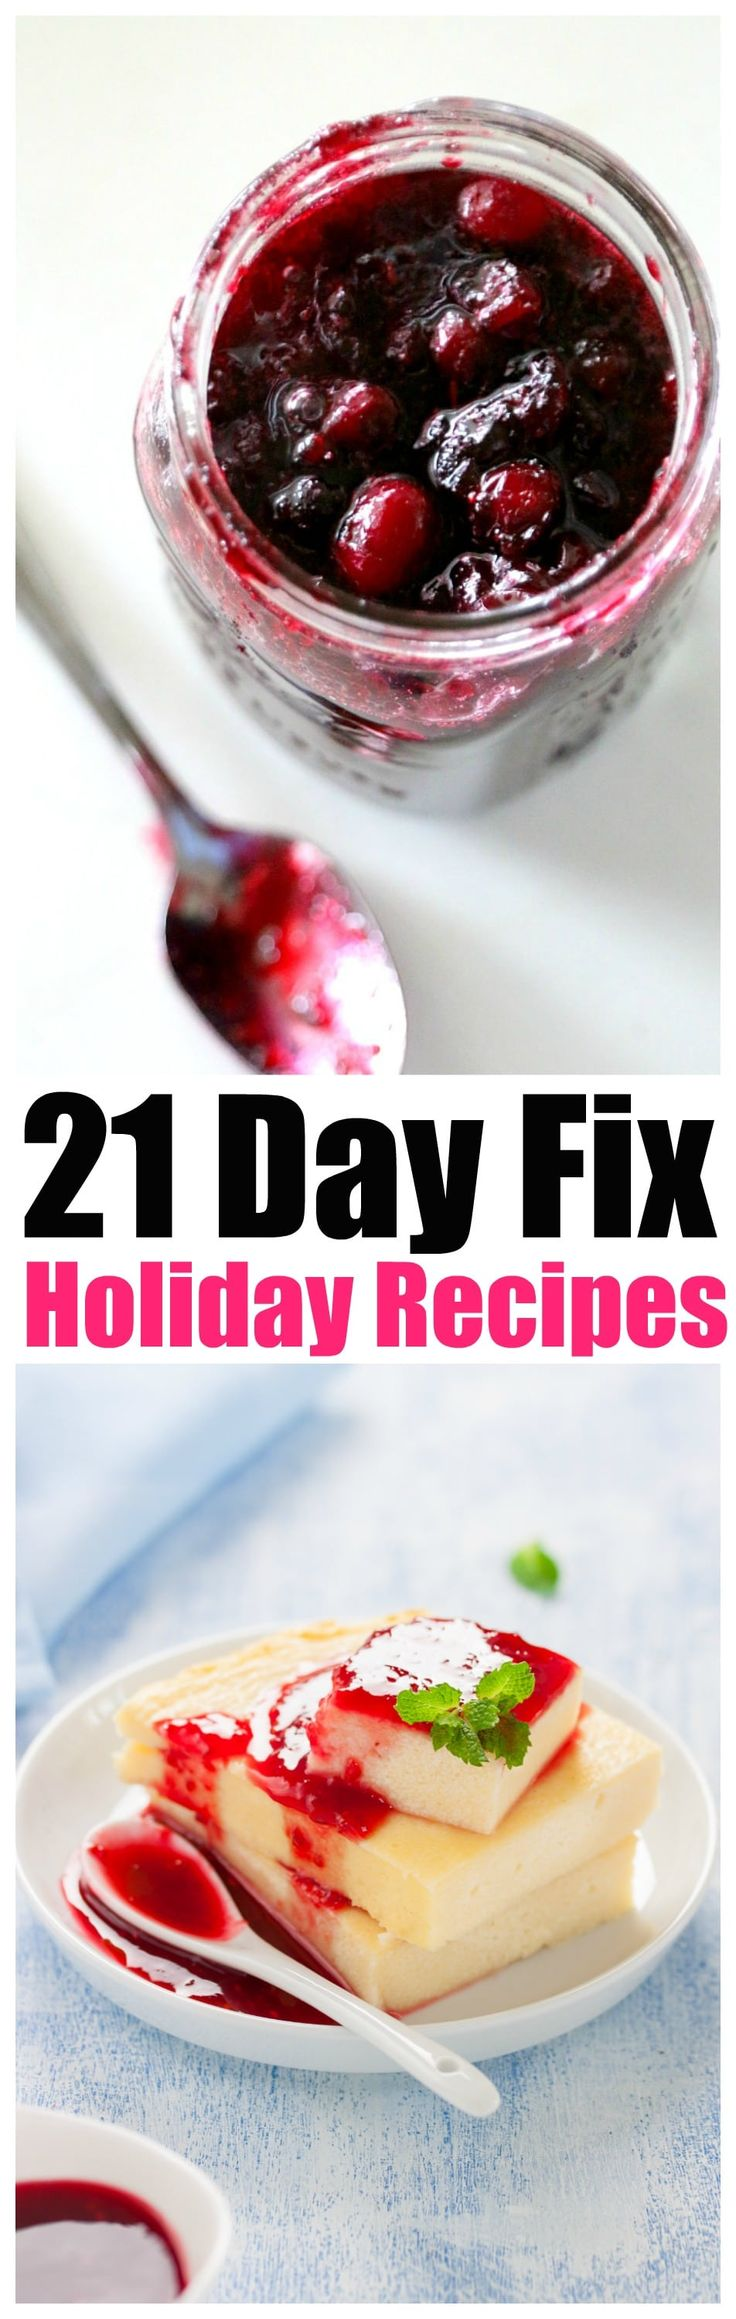 21 day fix holiday recipes, its all about the side dishes for the holidays, so check out these delicious ways to make holiday meal planning stress free AND delicious